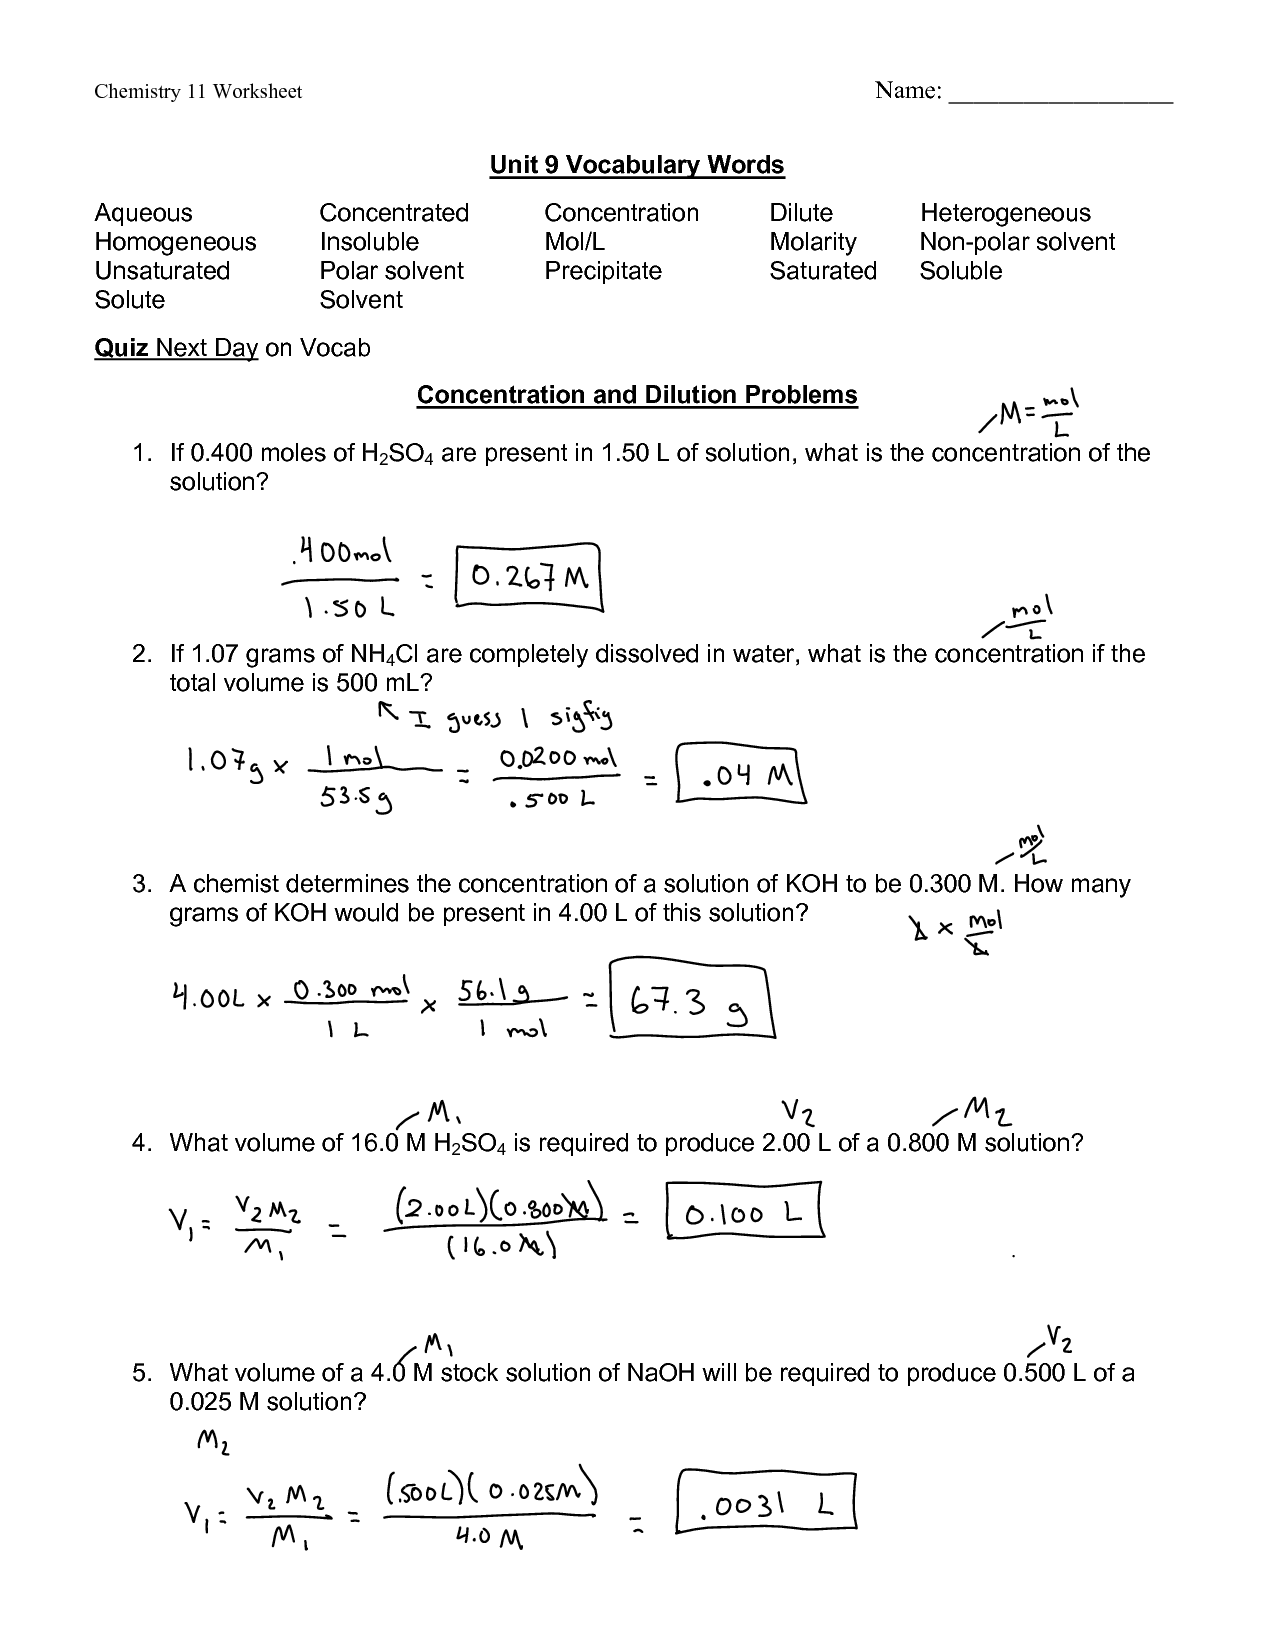 Solutions Concentration Worksheet